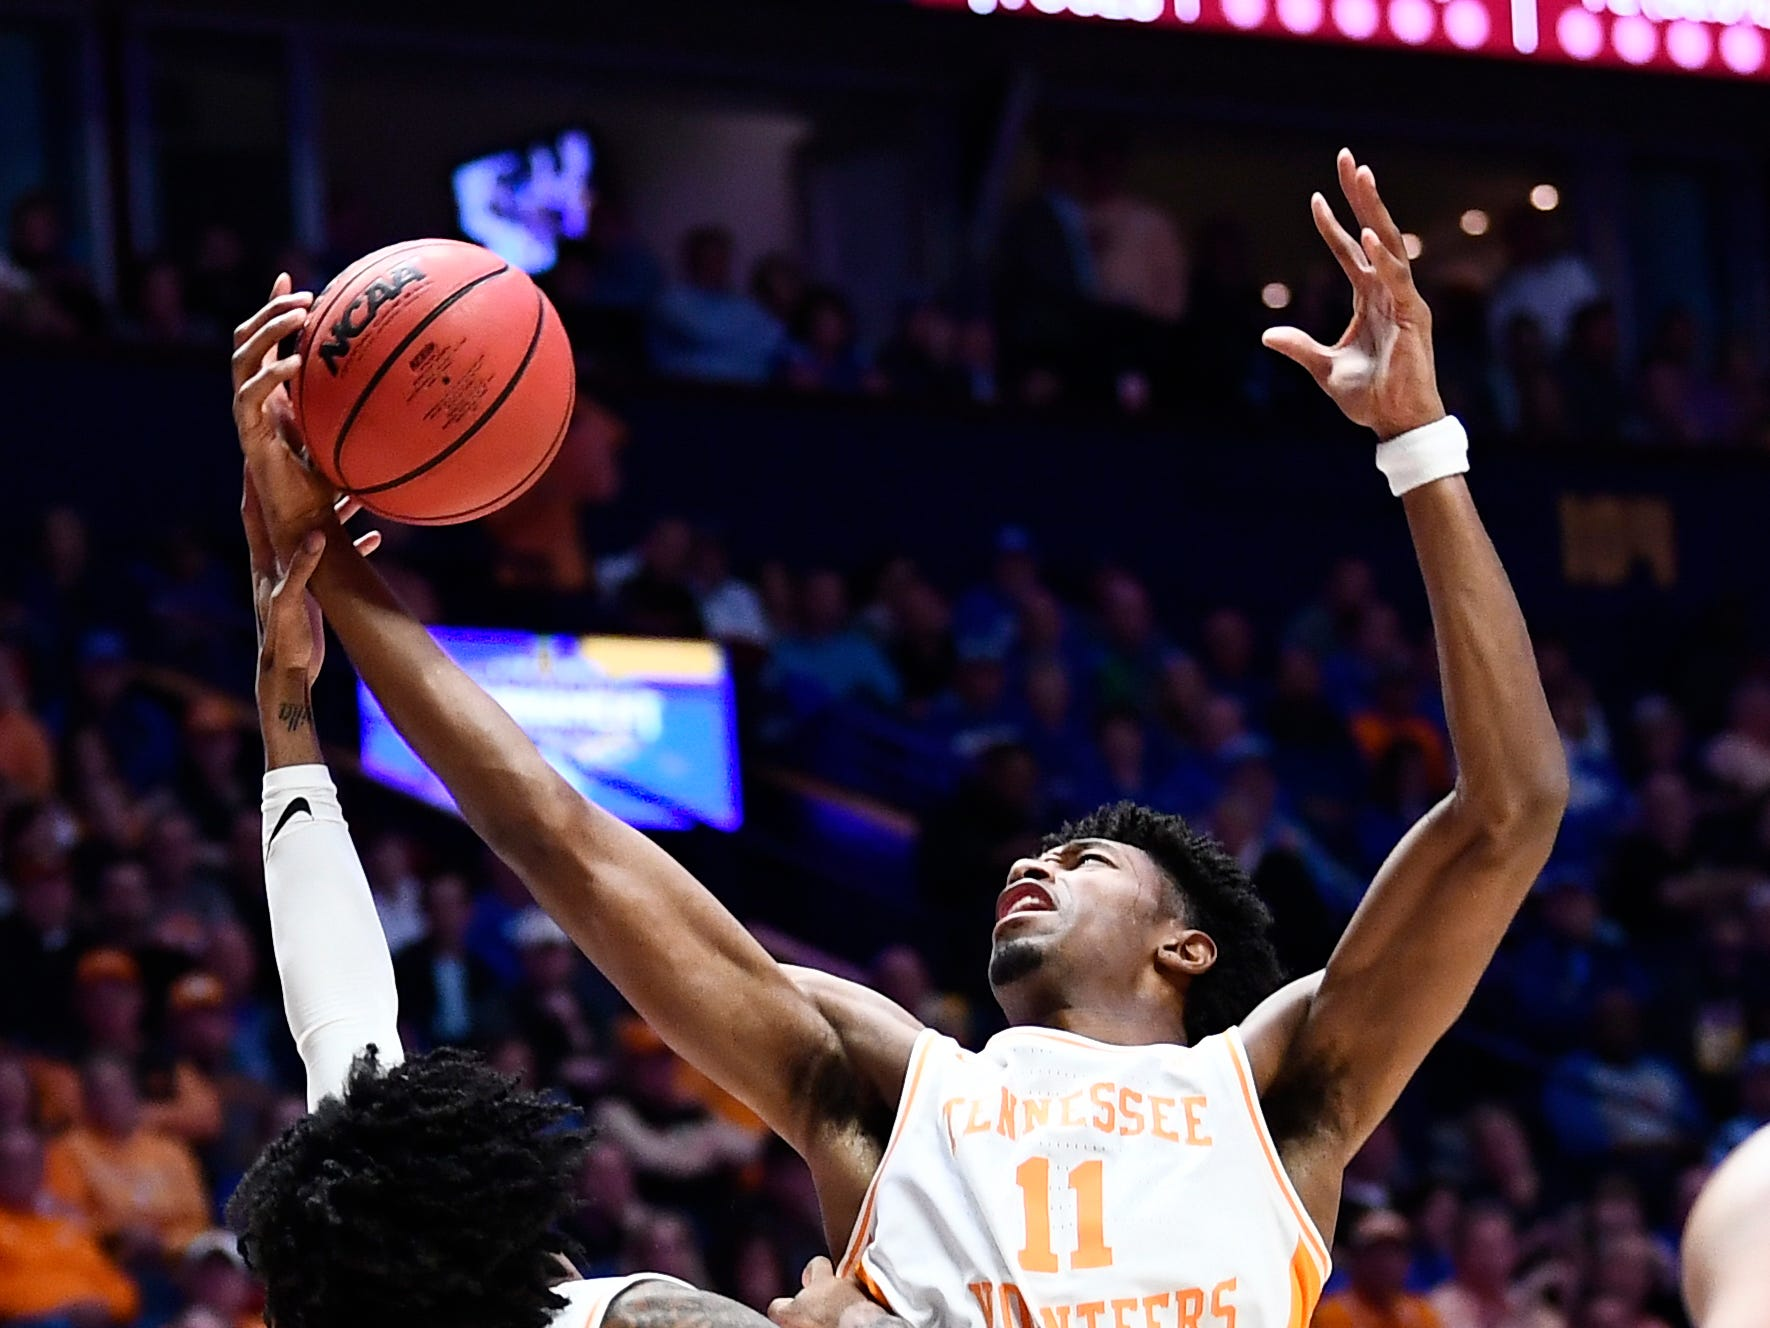 Tennessee forward Kyle Alexander (11) grabs a rebound with guard Jordan Bowden (23) during the first half of the SEC Men's Basketball Tournament game at Bridgestone Arena in Nashville, Tenn., Friday, March 15, 2019.